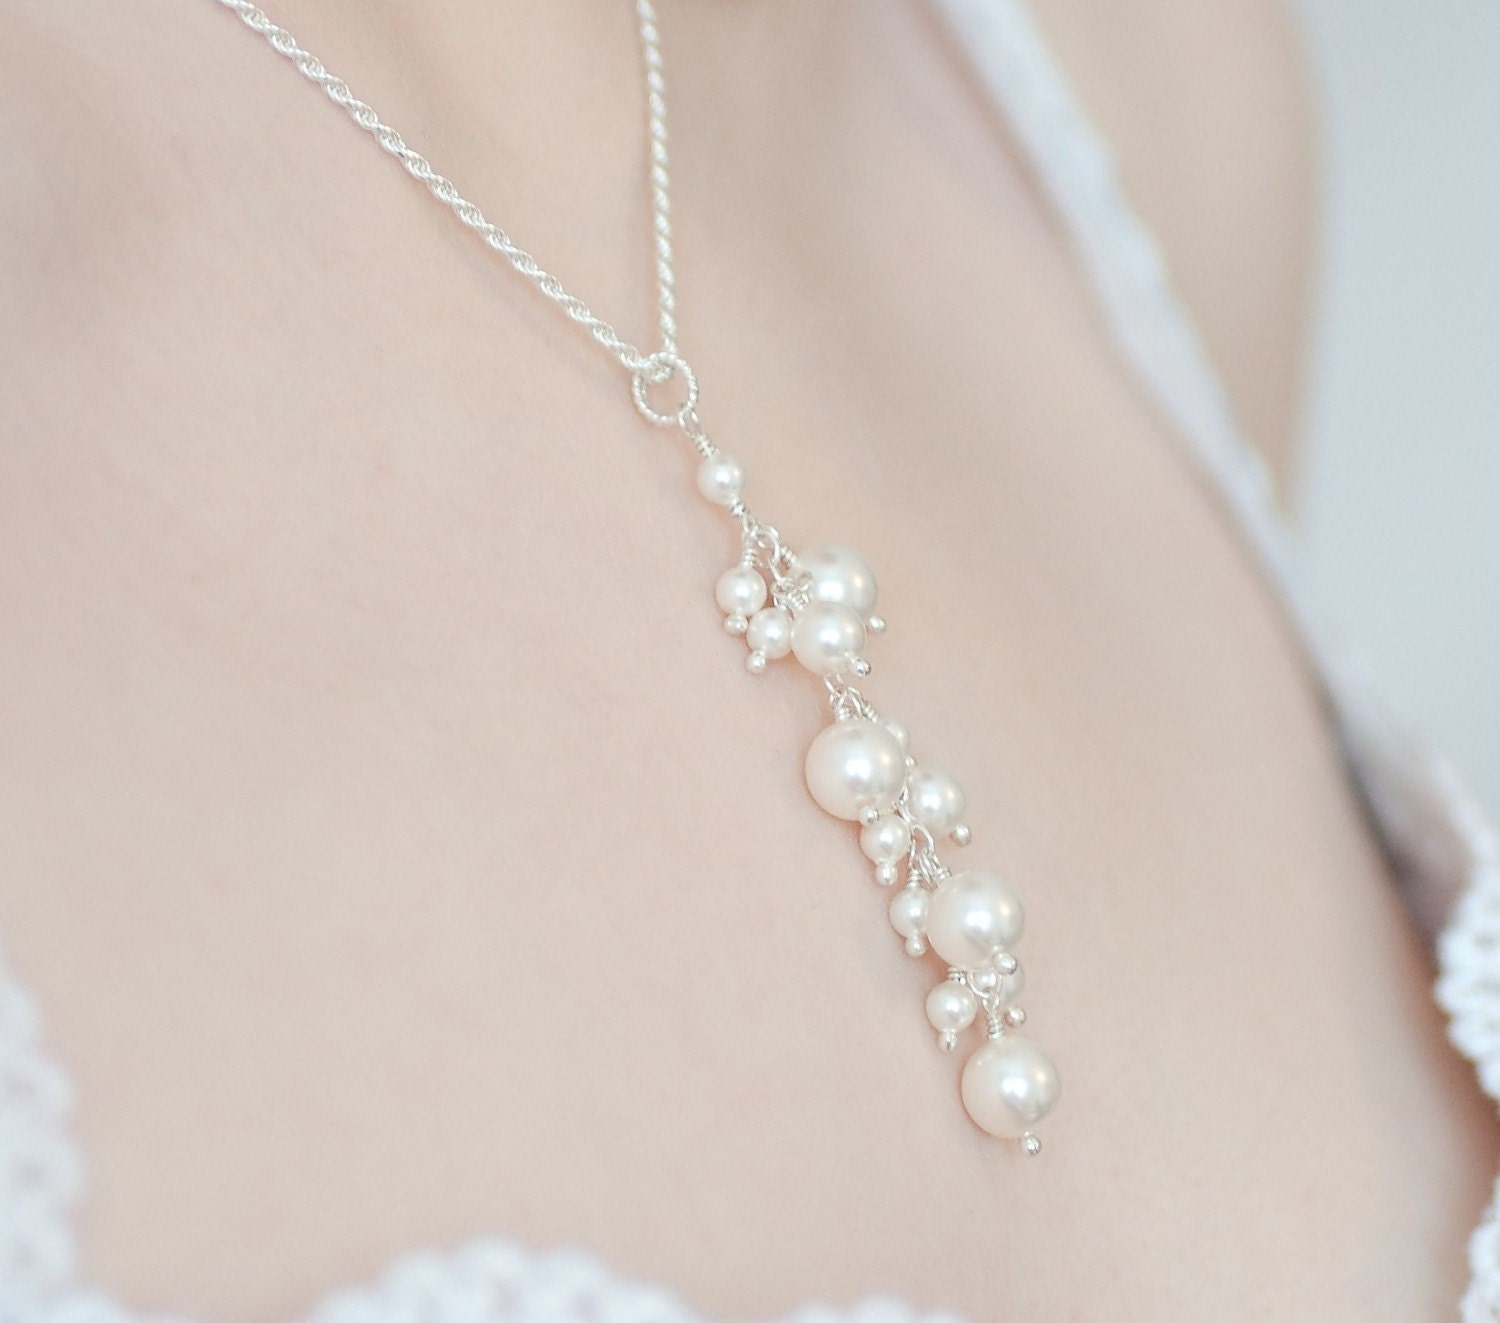 Pearl Y Necklace Pearl Pendant Necklace Wedding Pearl